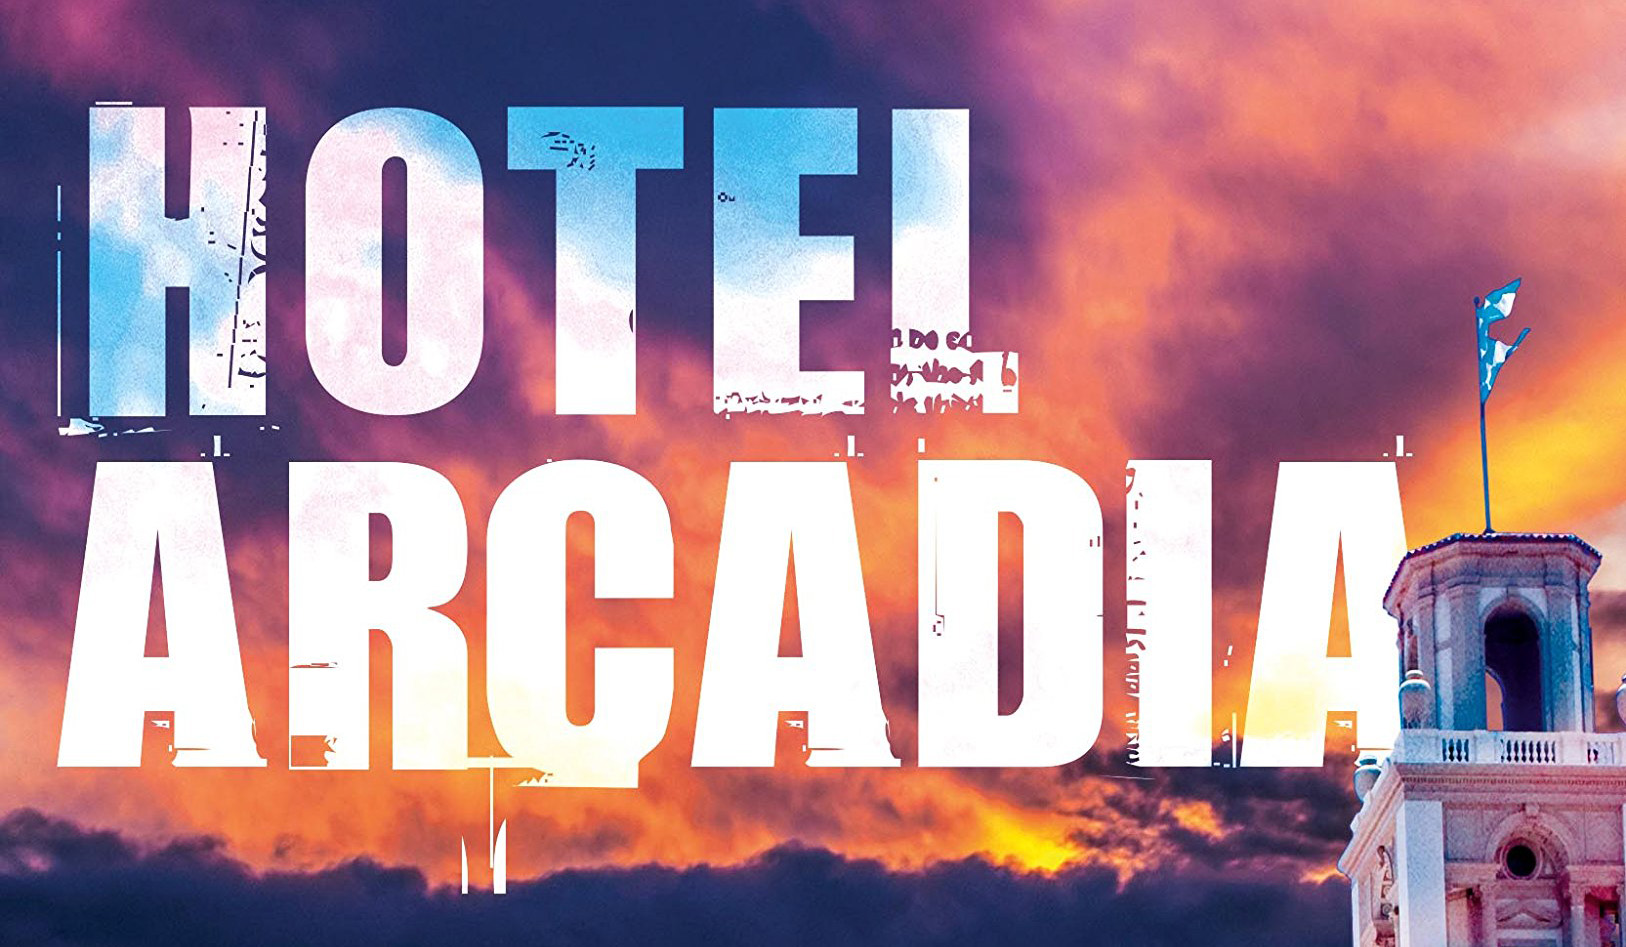 Hotel Arcadia book cover cropped to show title only